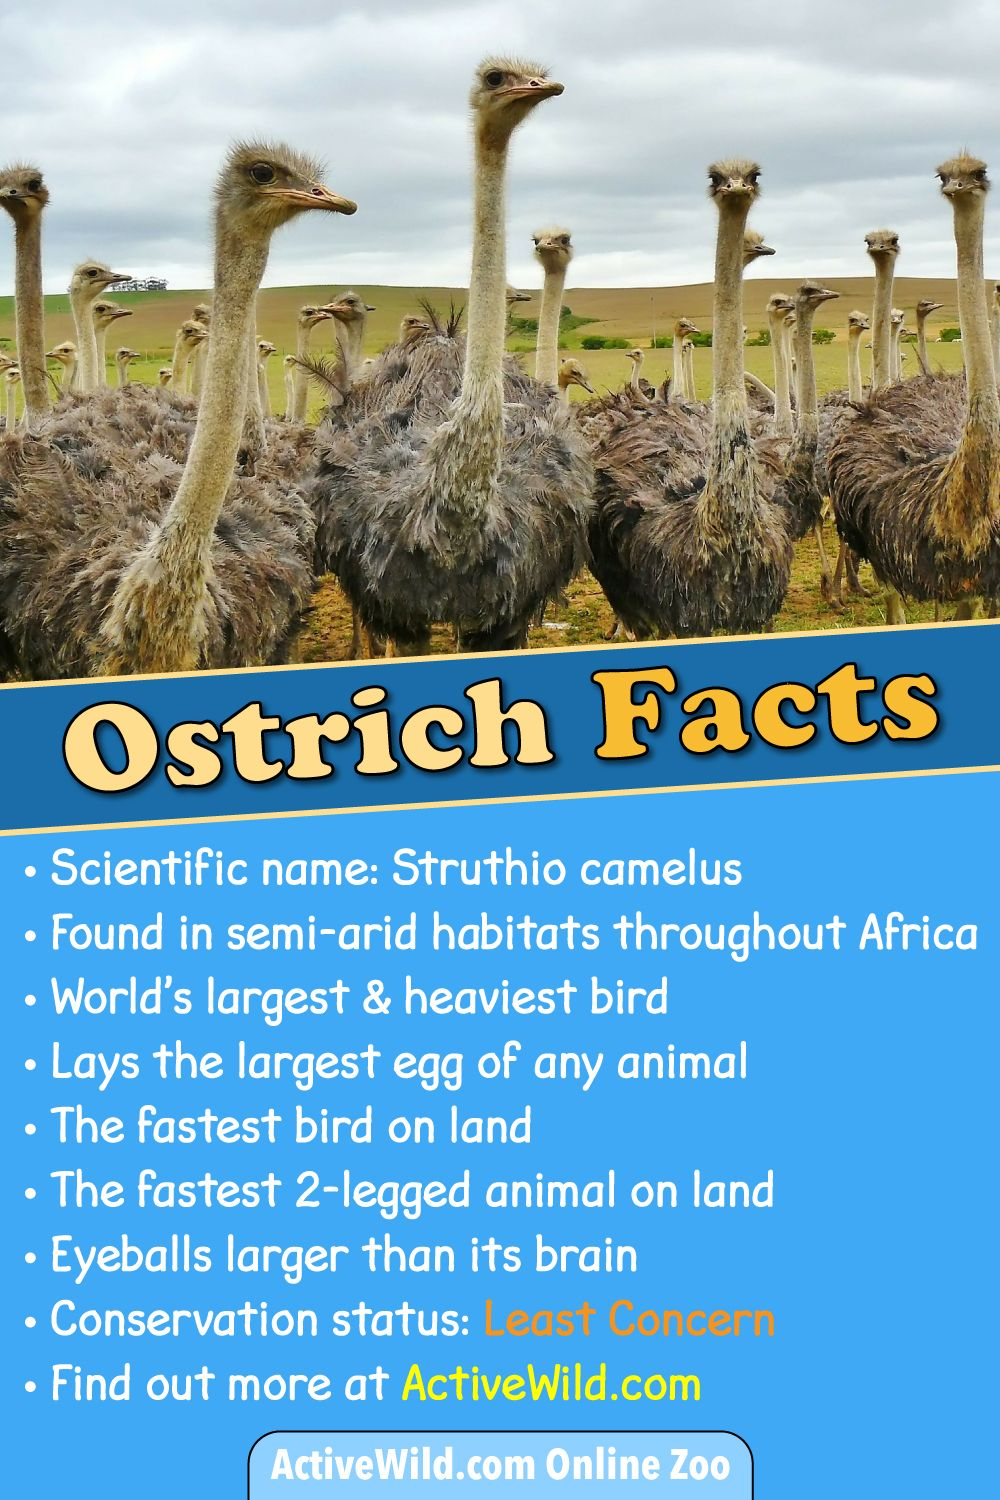 Interesting facts and abilities of the animal world